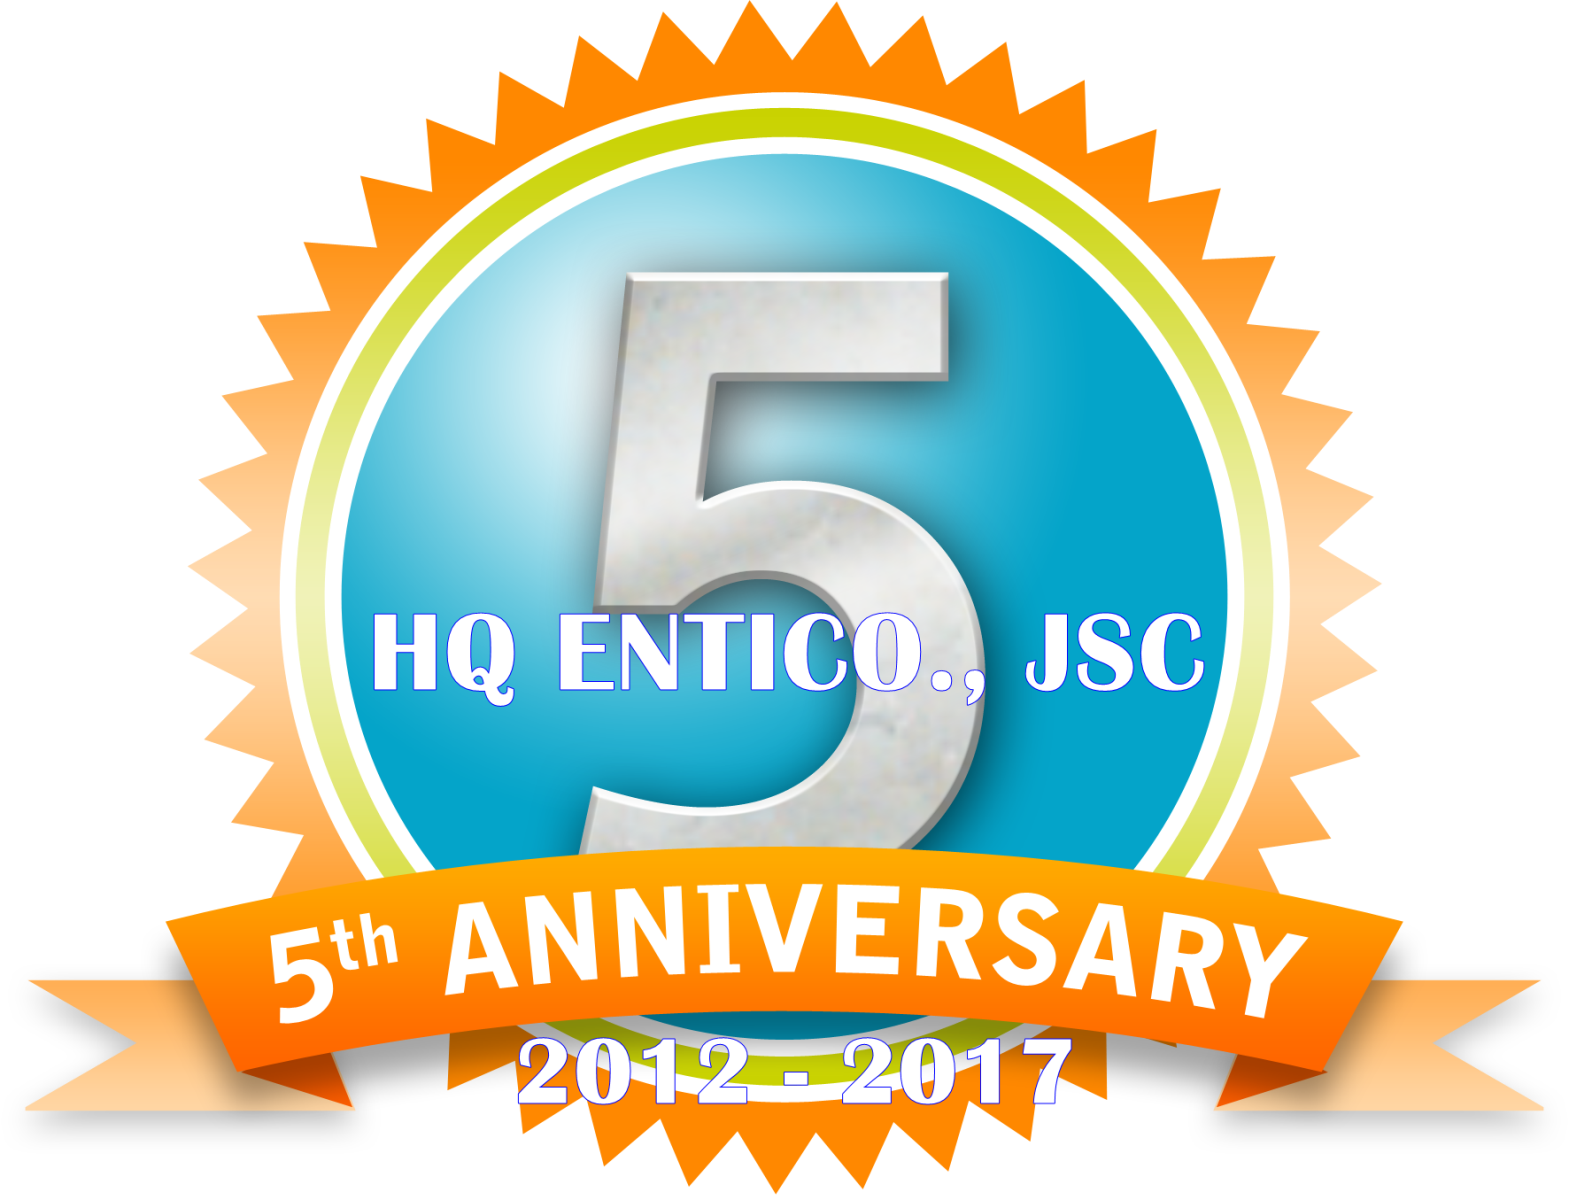 5th Anniversary HQ Entico